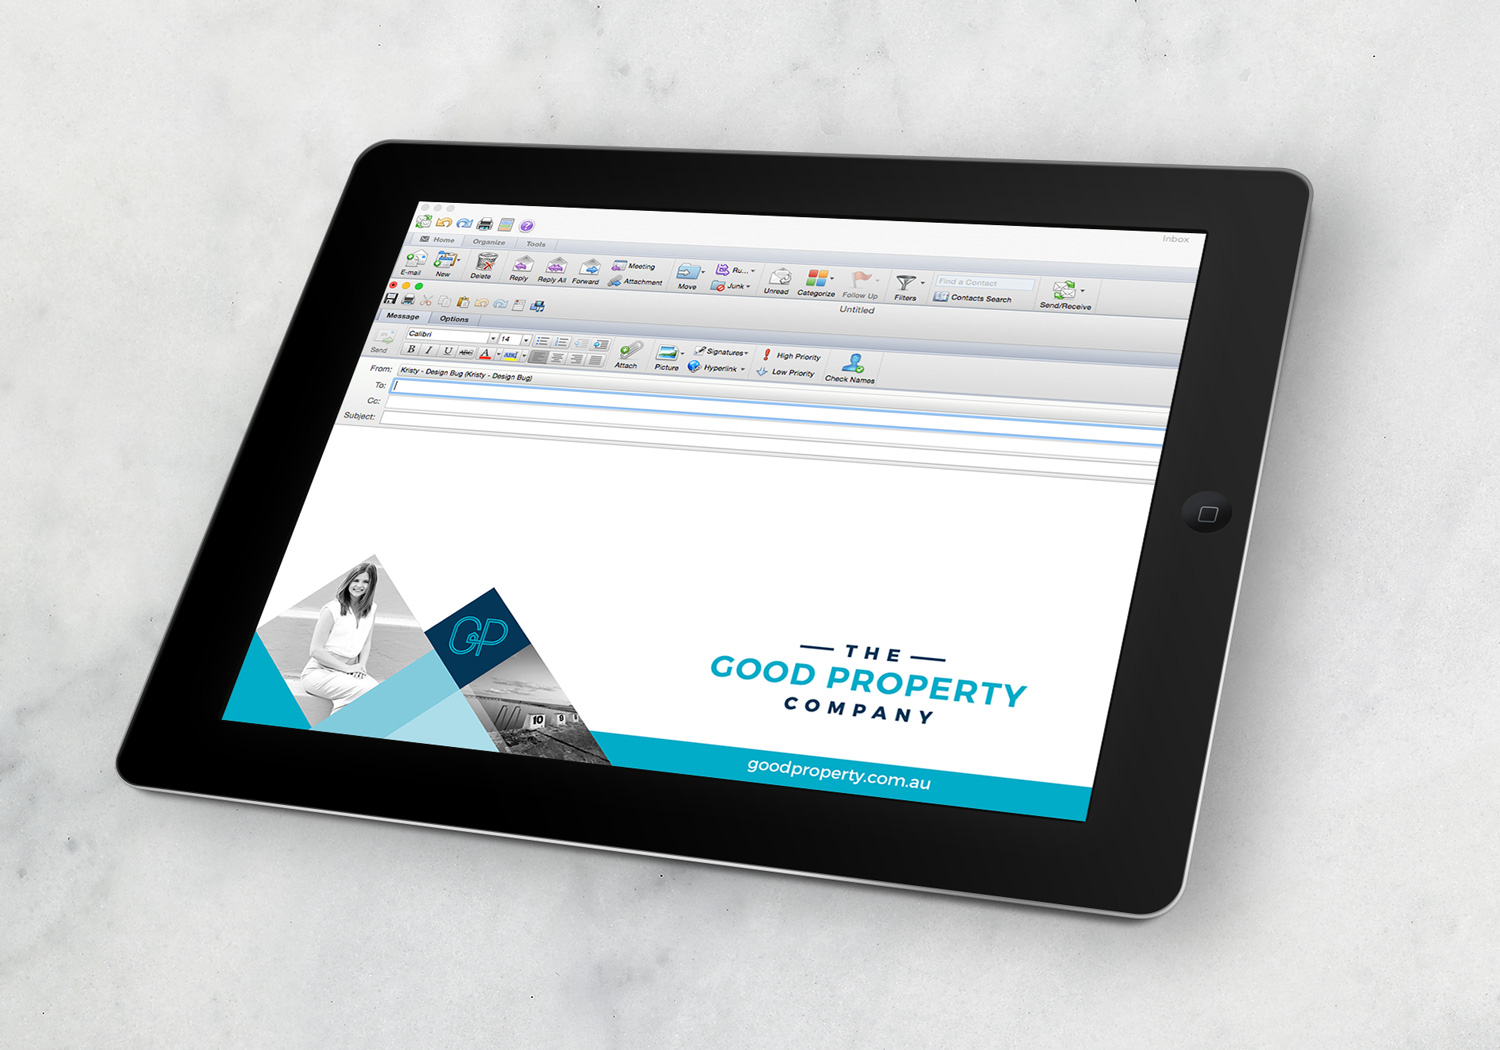 TGPC-Tablet-Email